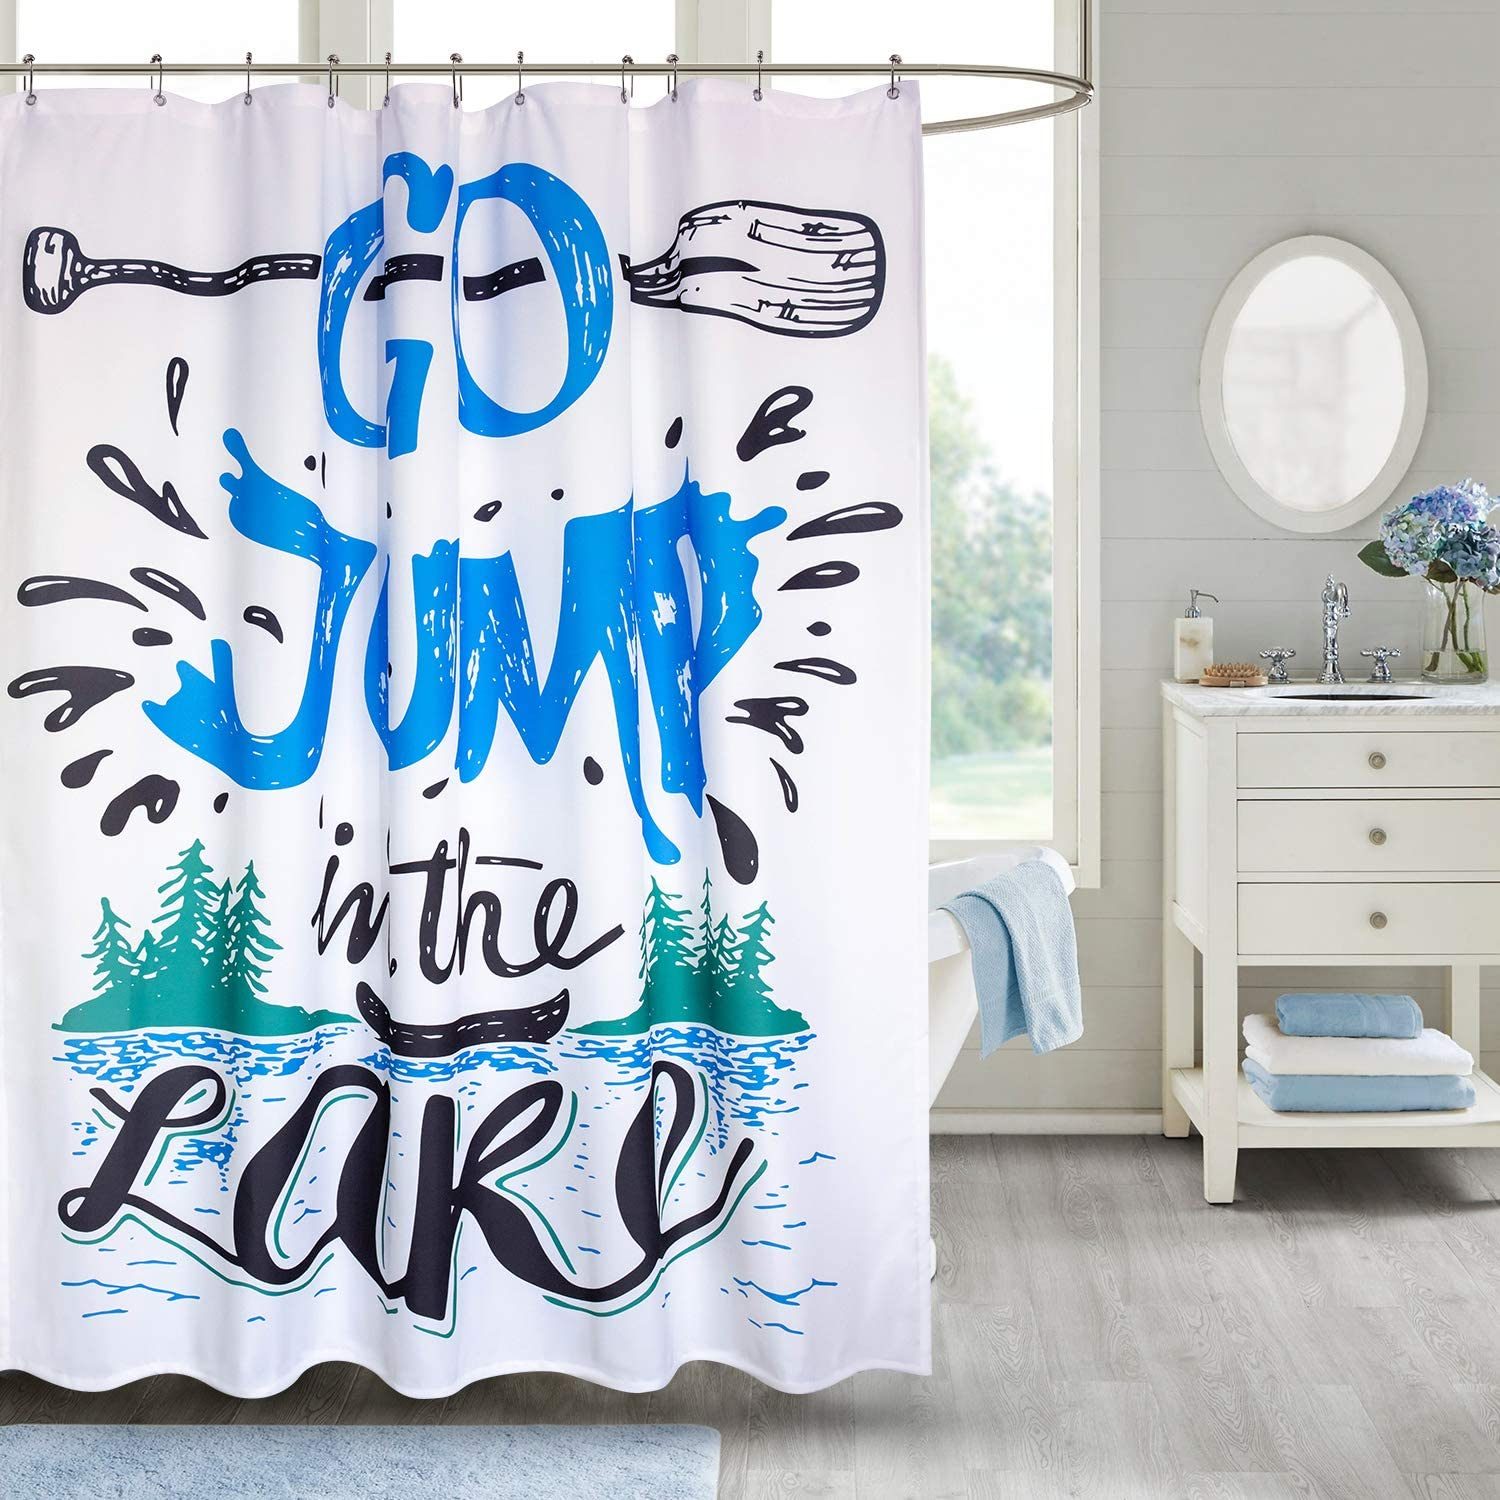 VVA Fabric Shower Curtain with Hooks for Bathroom Waterproof Machine Washable Breathable 72x72 inch Cabin Decor Vintage Typography Inspiration Quote Lake Sign Canoe Fishing Sports Theme Blue Black